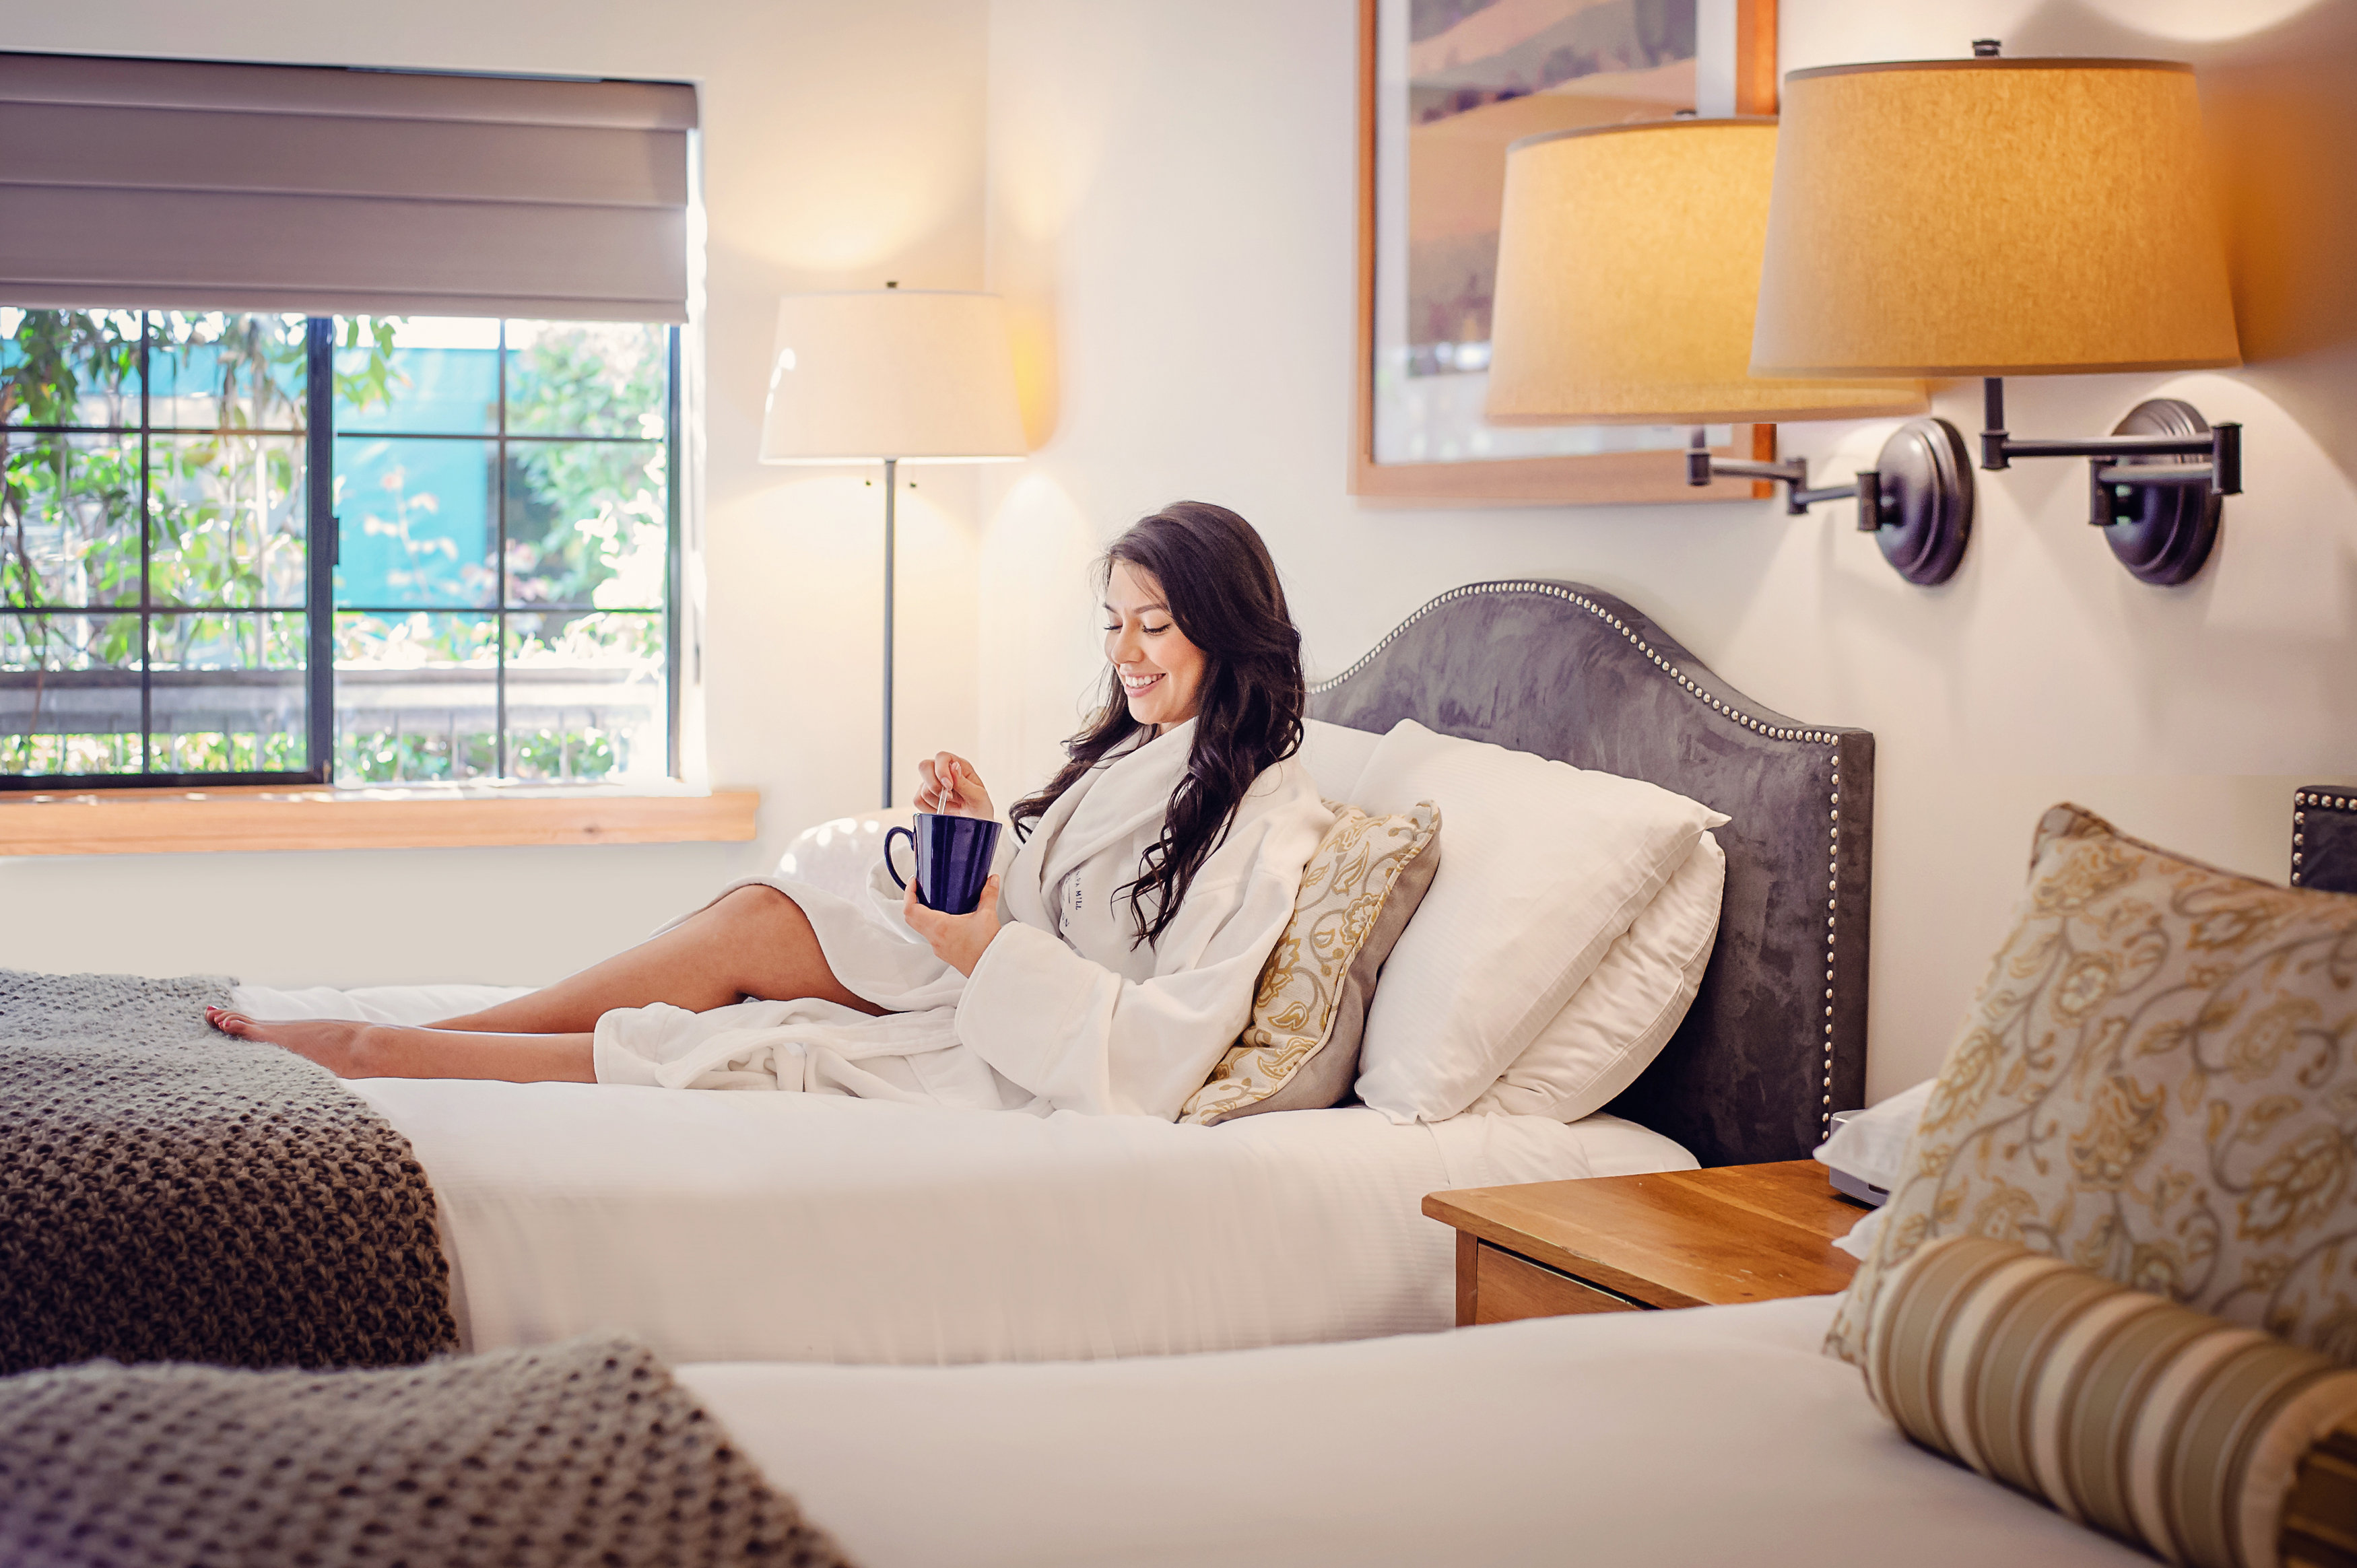 guest relaxing in bed enjoying freshly-brewed coffee